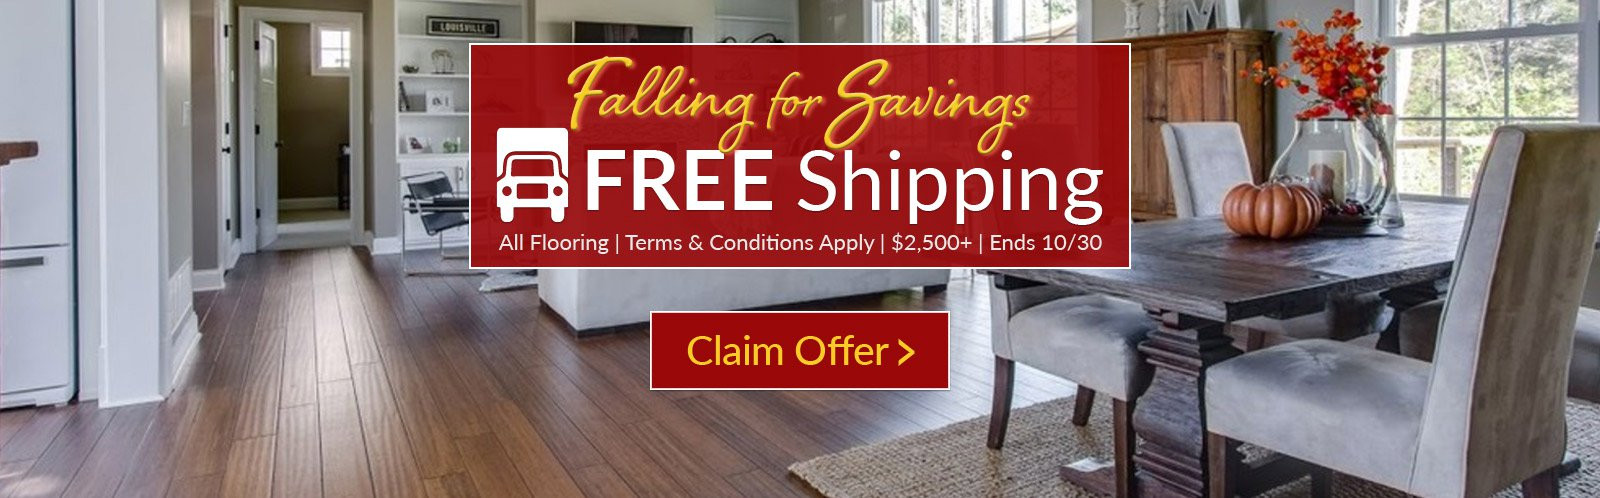 Hardwood Flooring Store Denver Of Green Building Construction Materials and Home Decor Cali Bamboo Pertaining to Your Shopping Cart is Empty